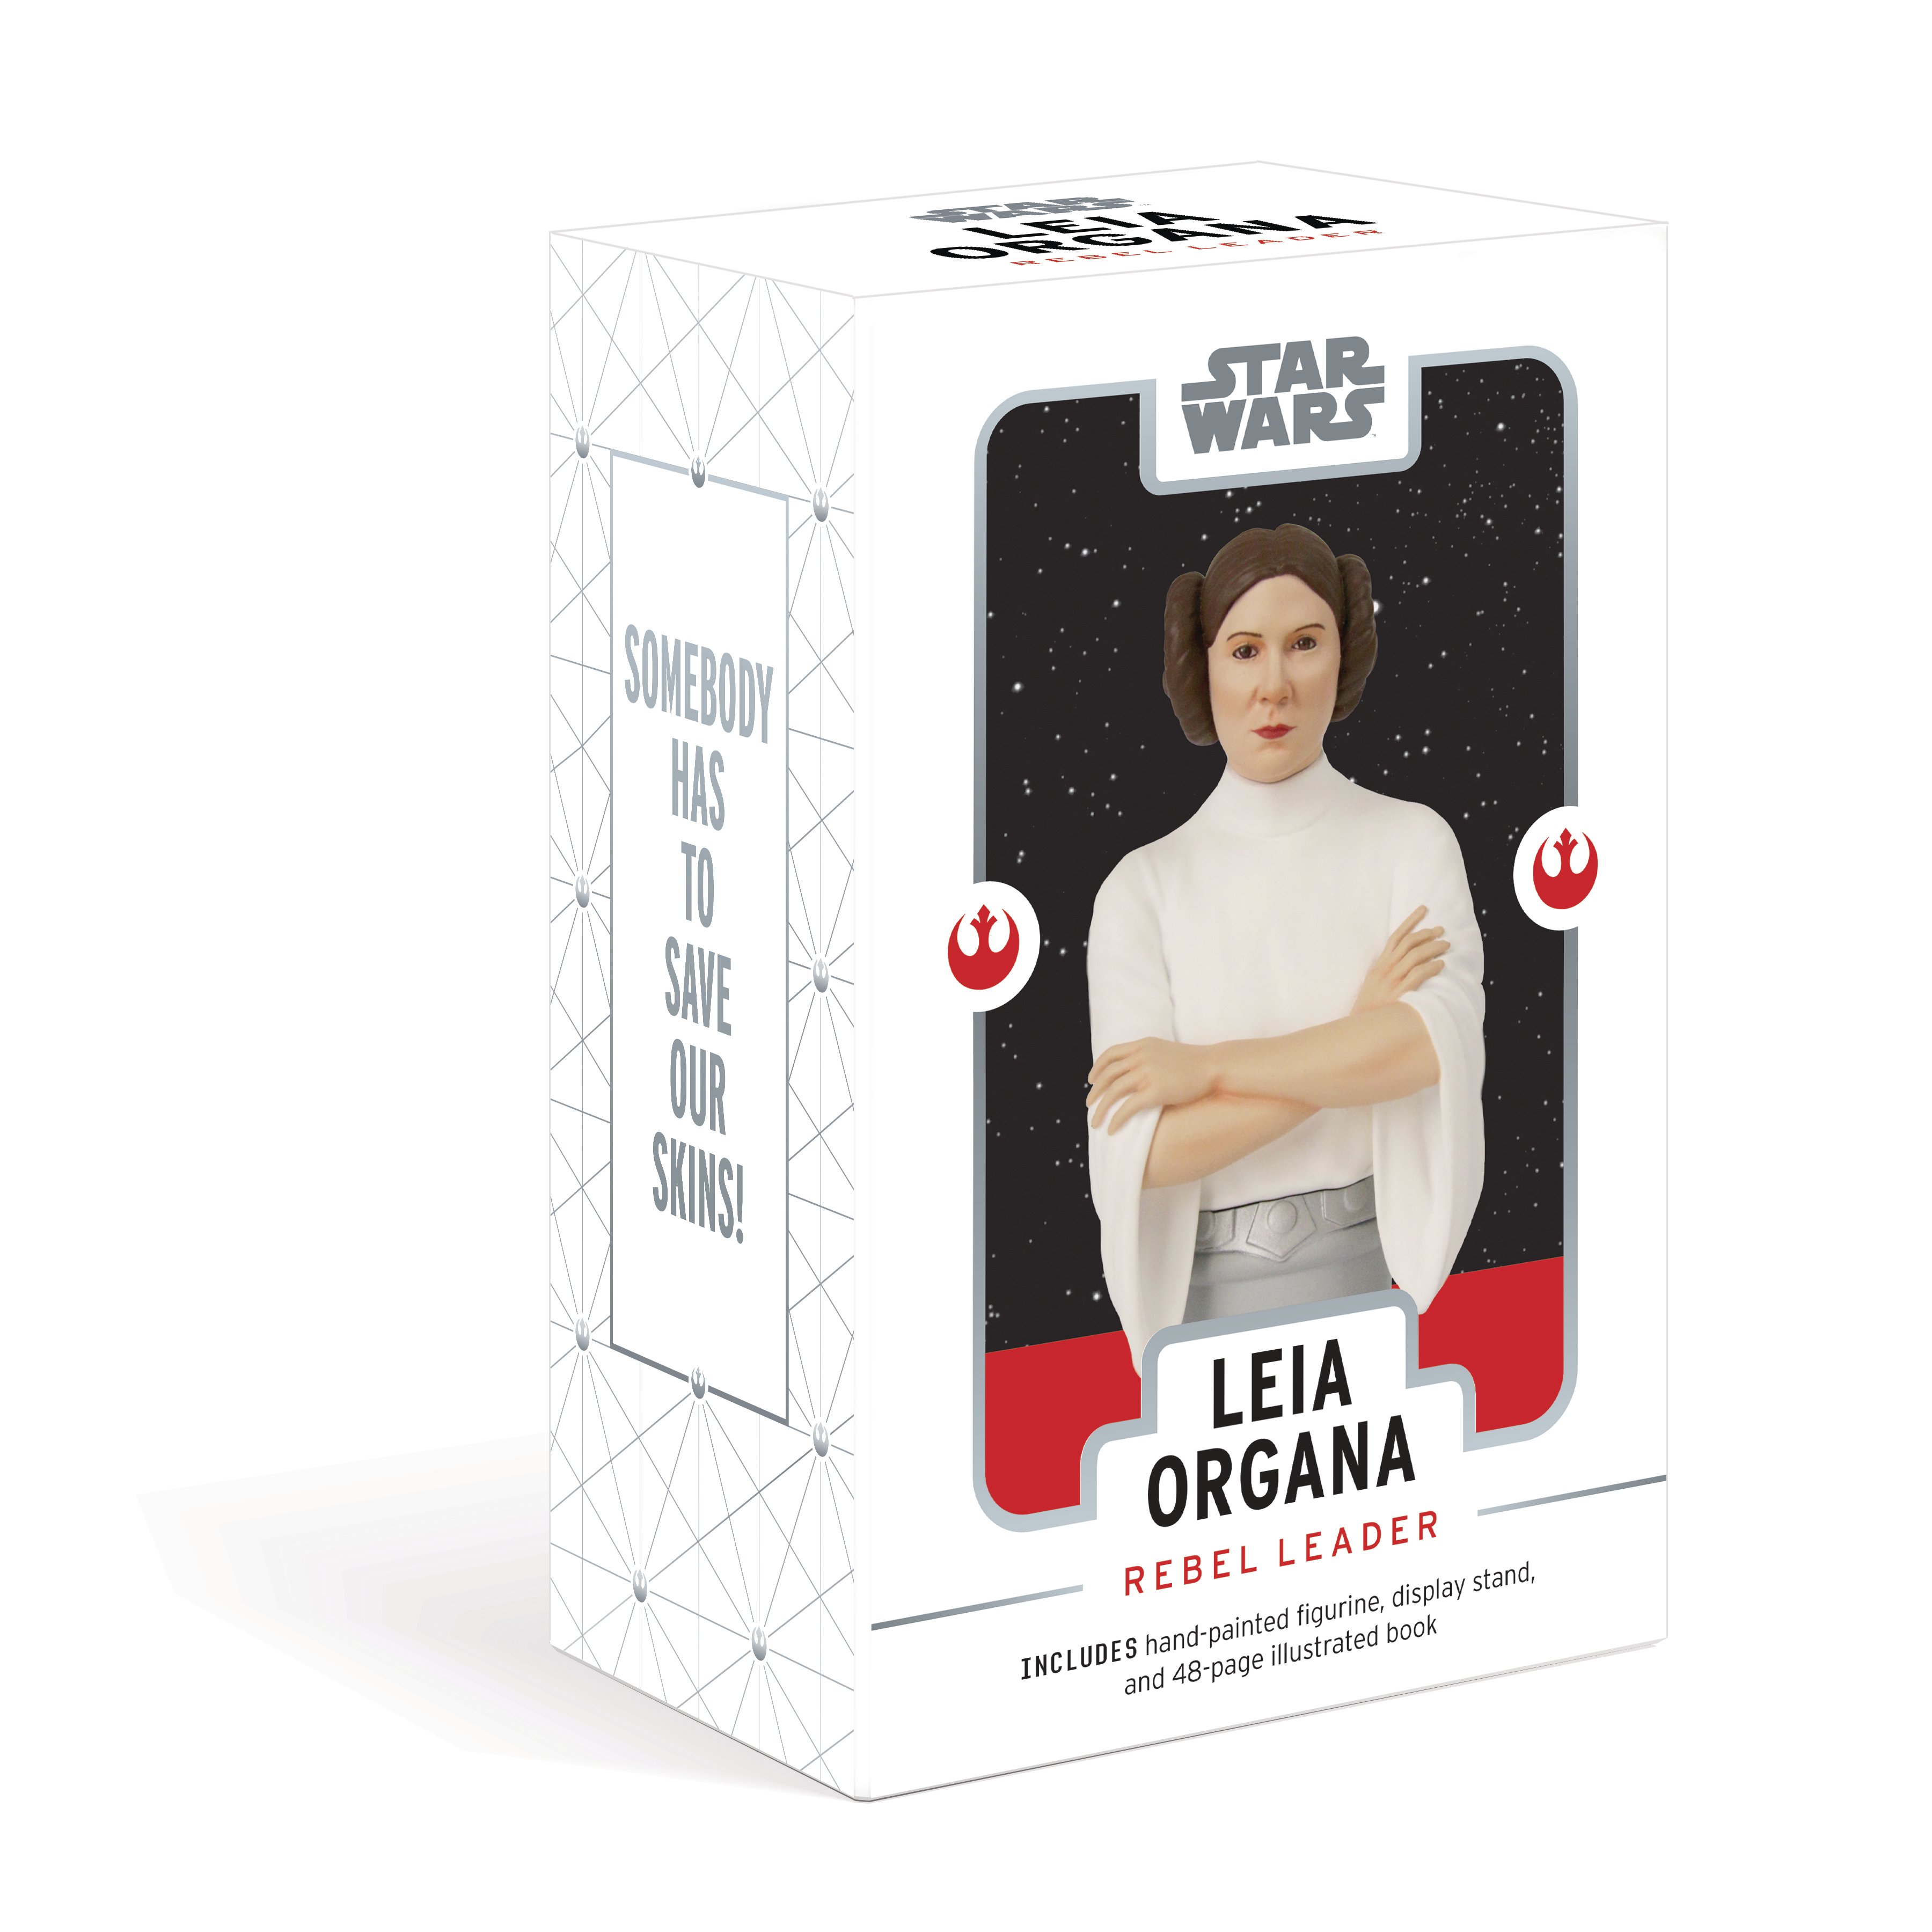 STAR WARS LEIA ORGANA REBEL LEADER IN A BOX (RES)